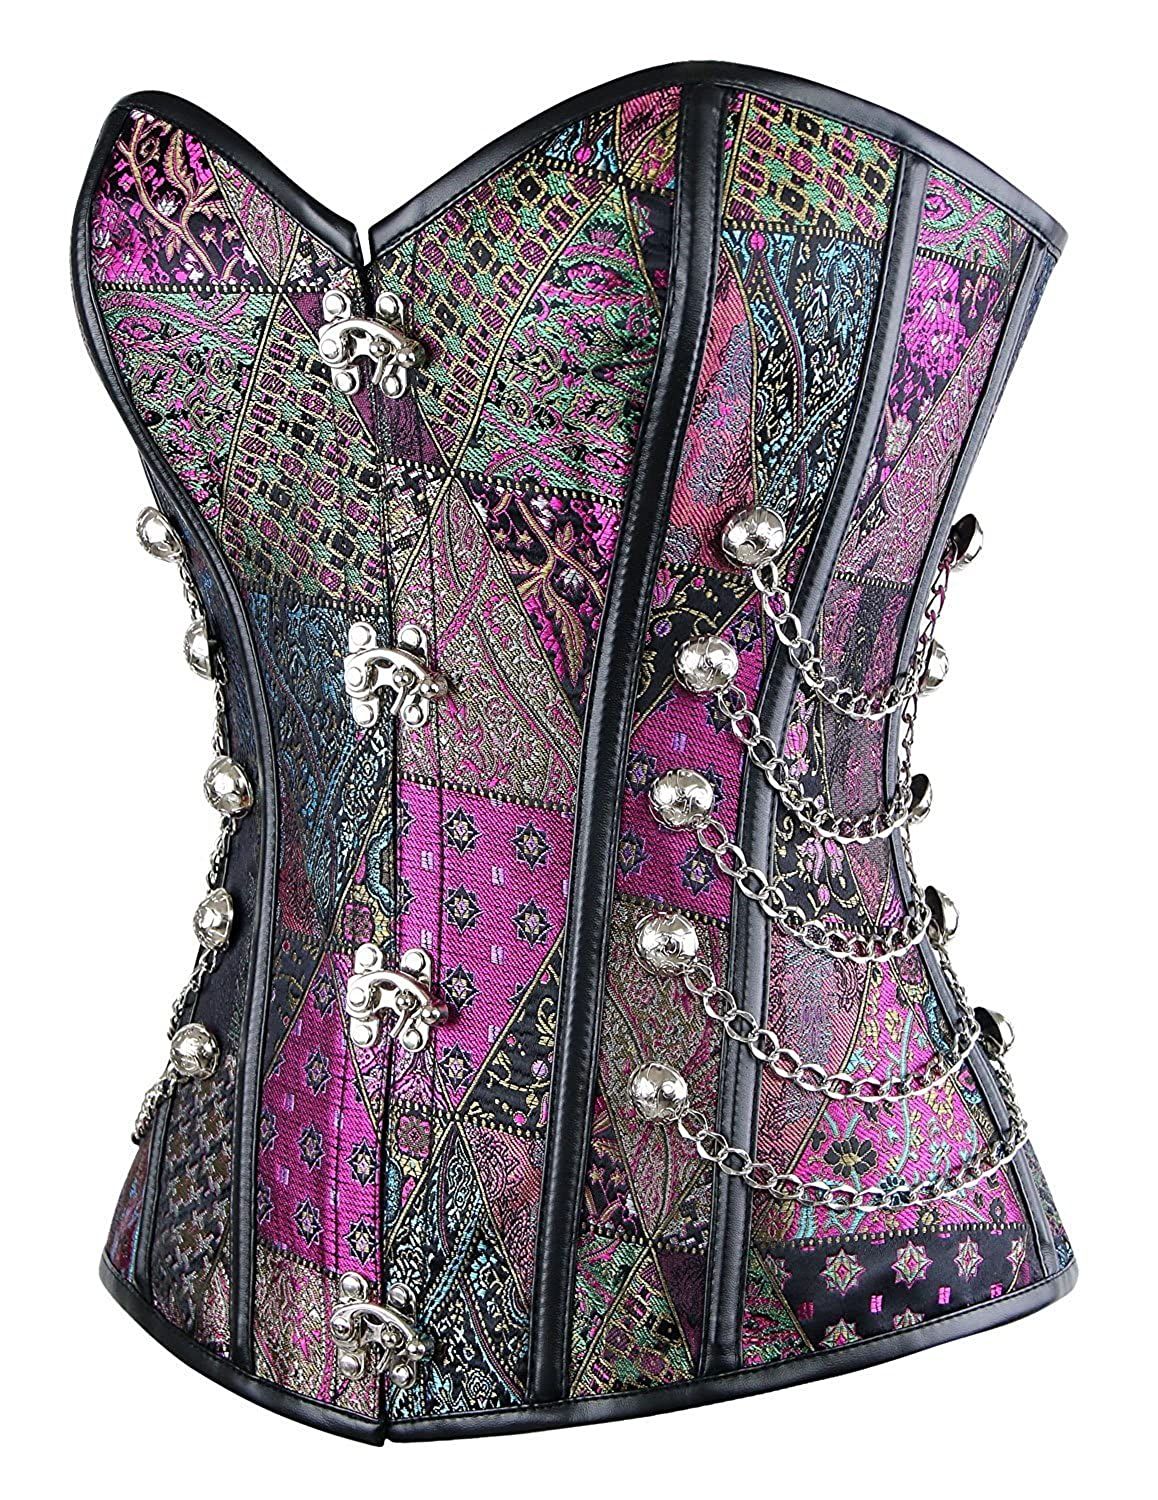 TX-Originality Corset Steampunk Gothic Steel Bonded Bustiers Corset